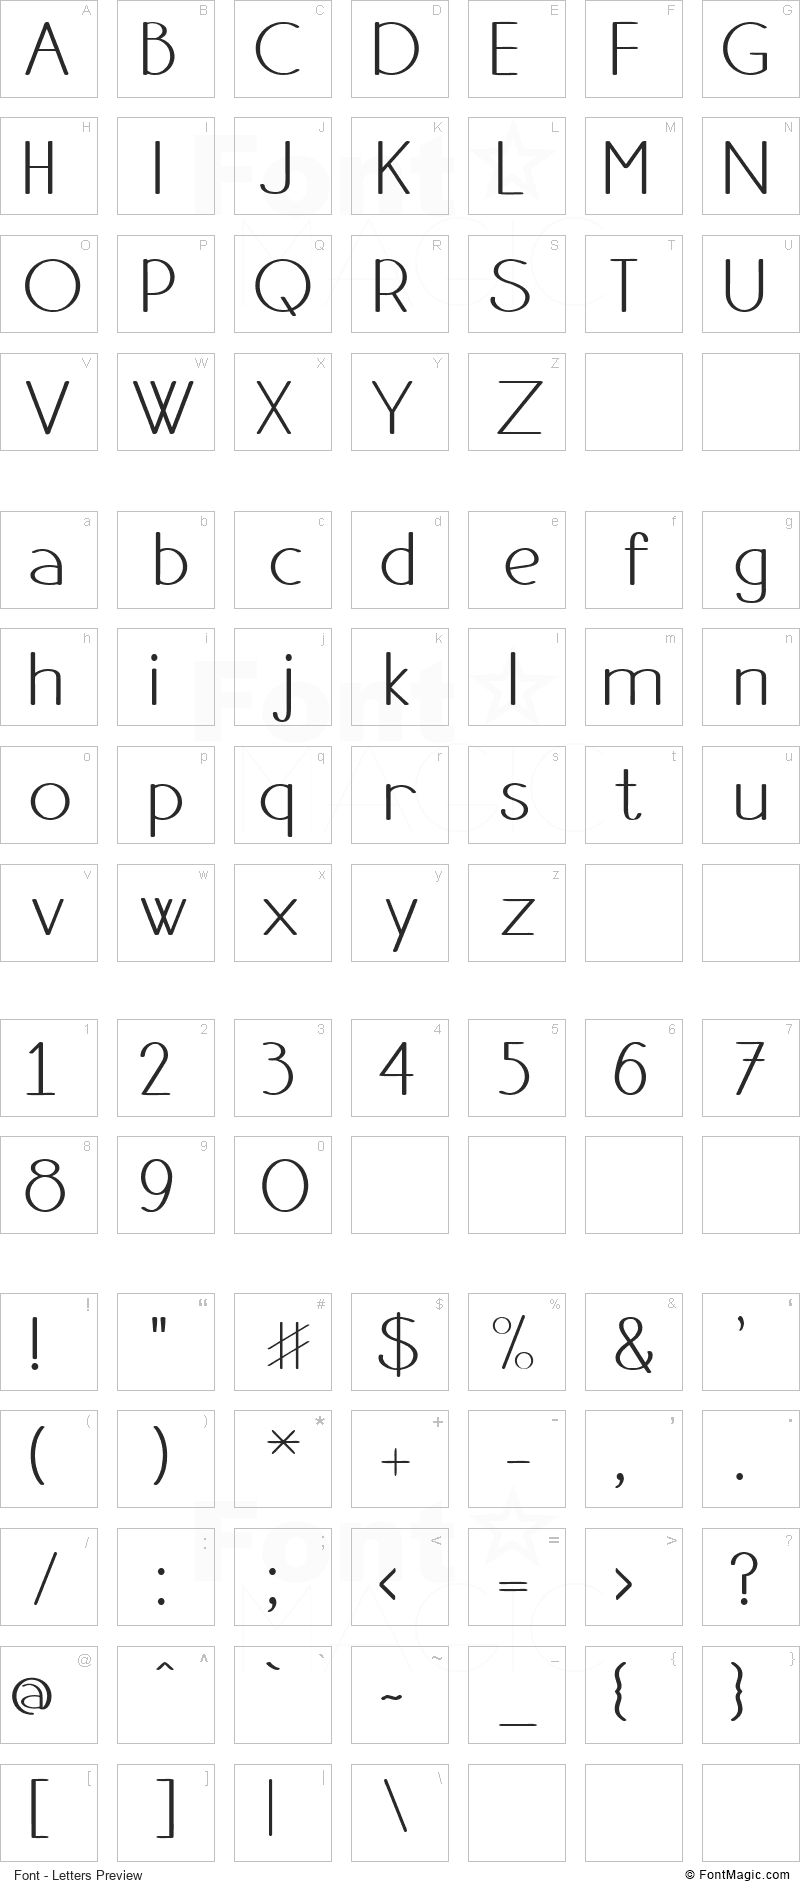 Danae Font - All Latters Preview Chart